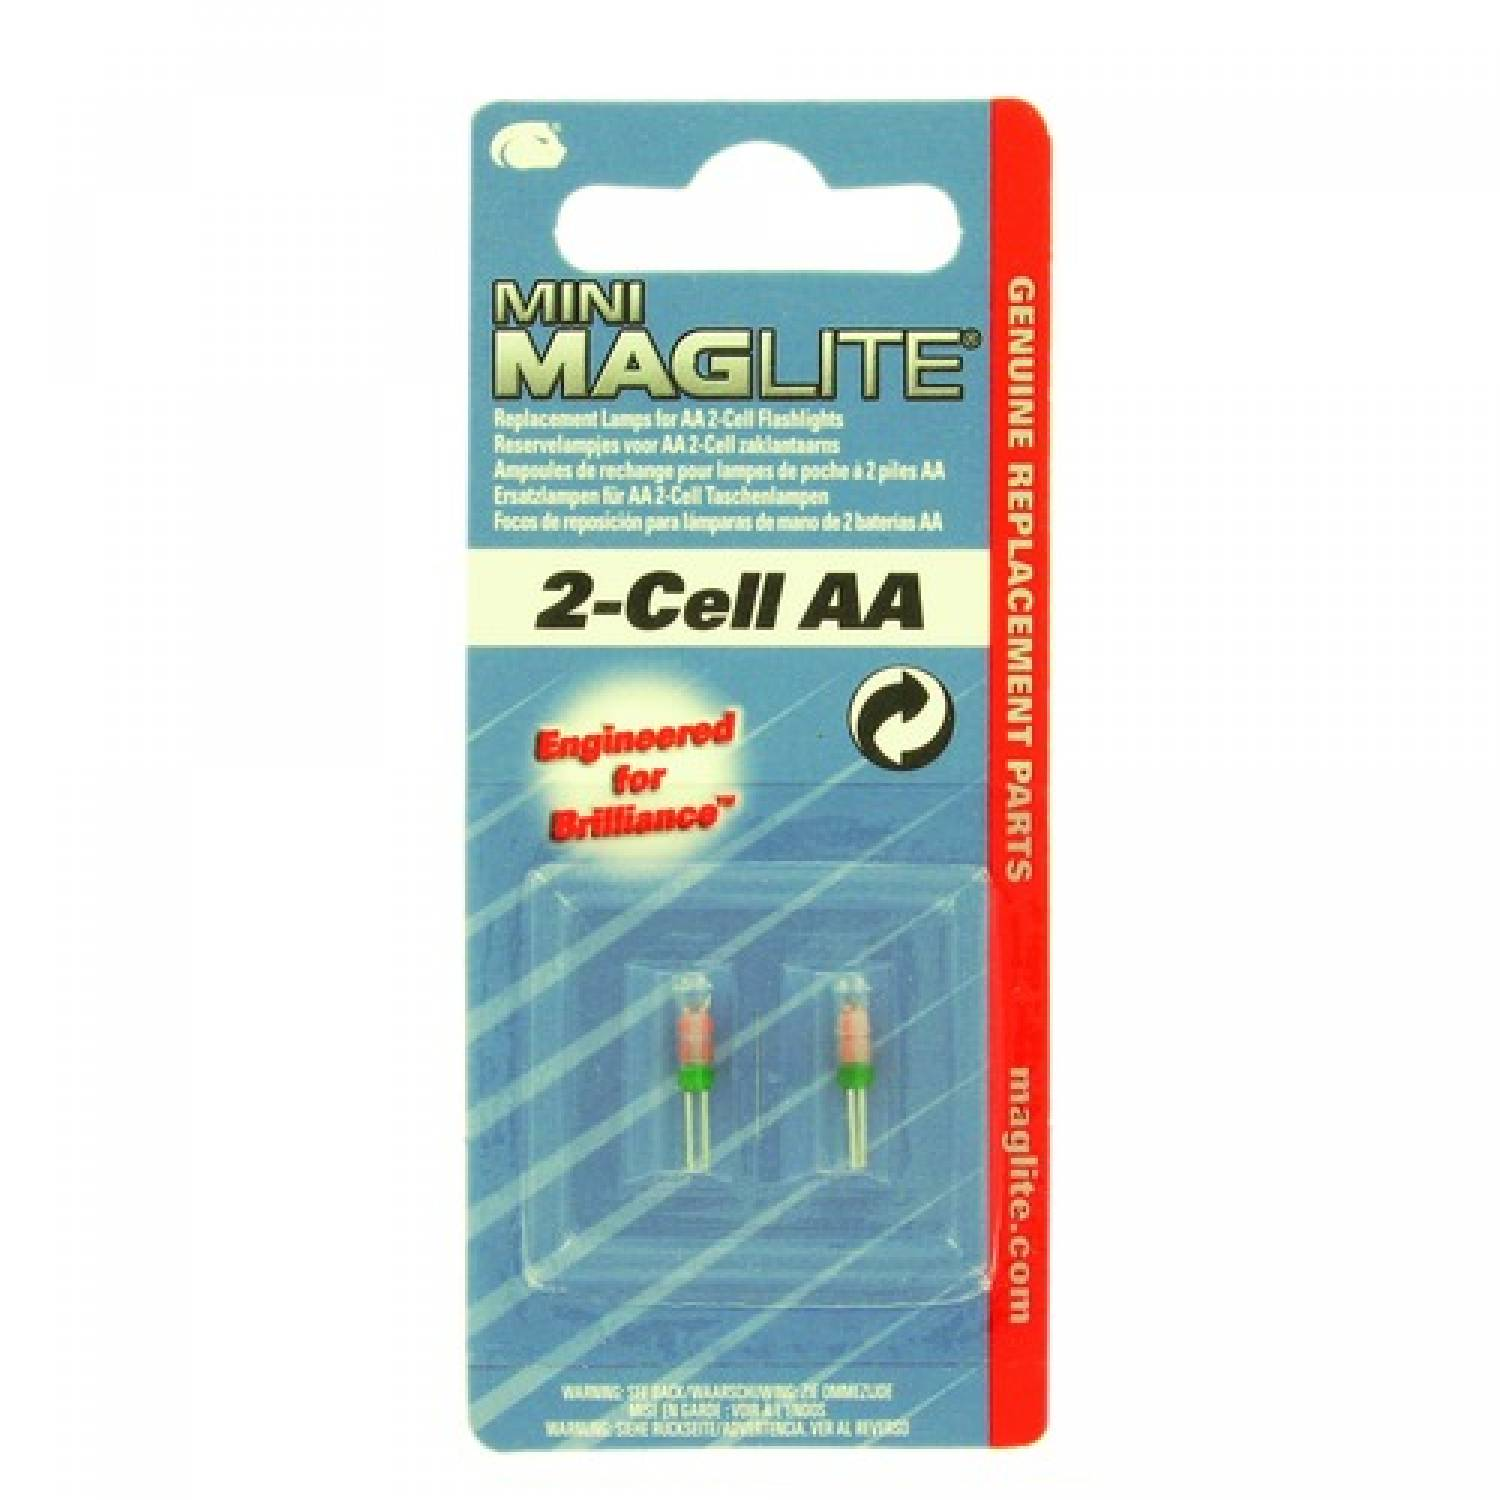 MAGLITE 2-CELL AAA REPLACEMENT BULB